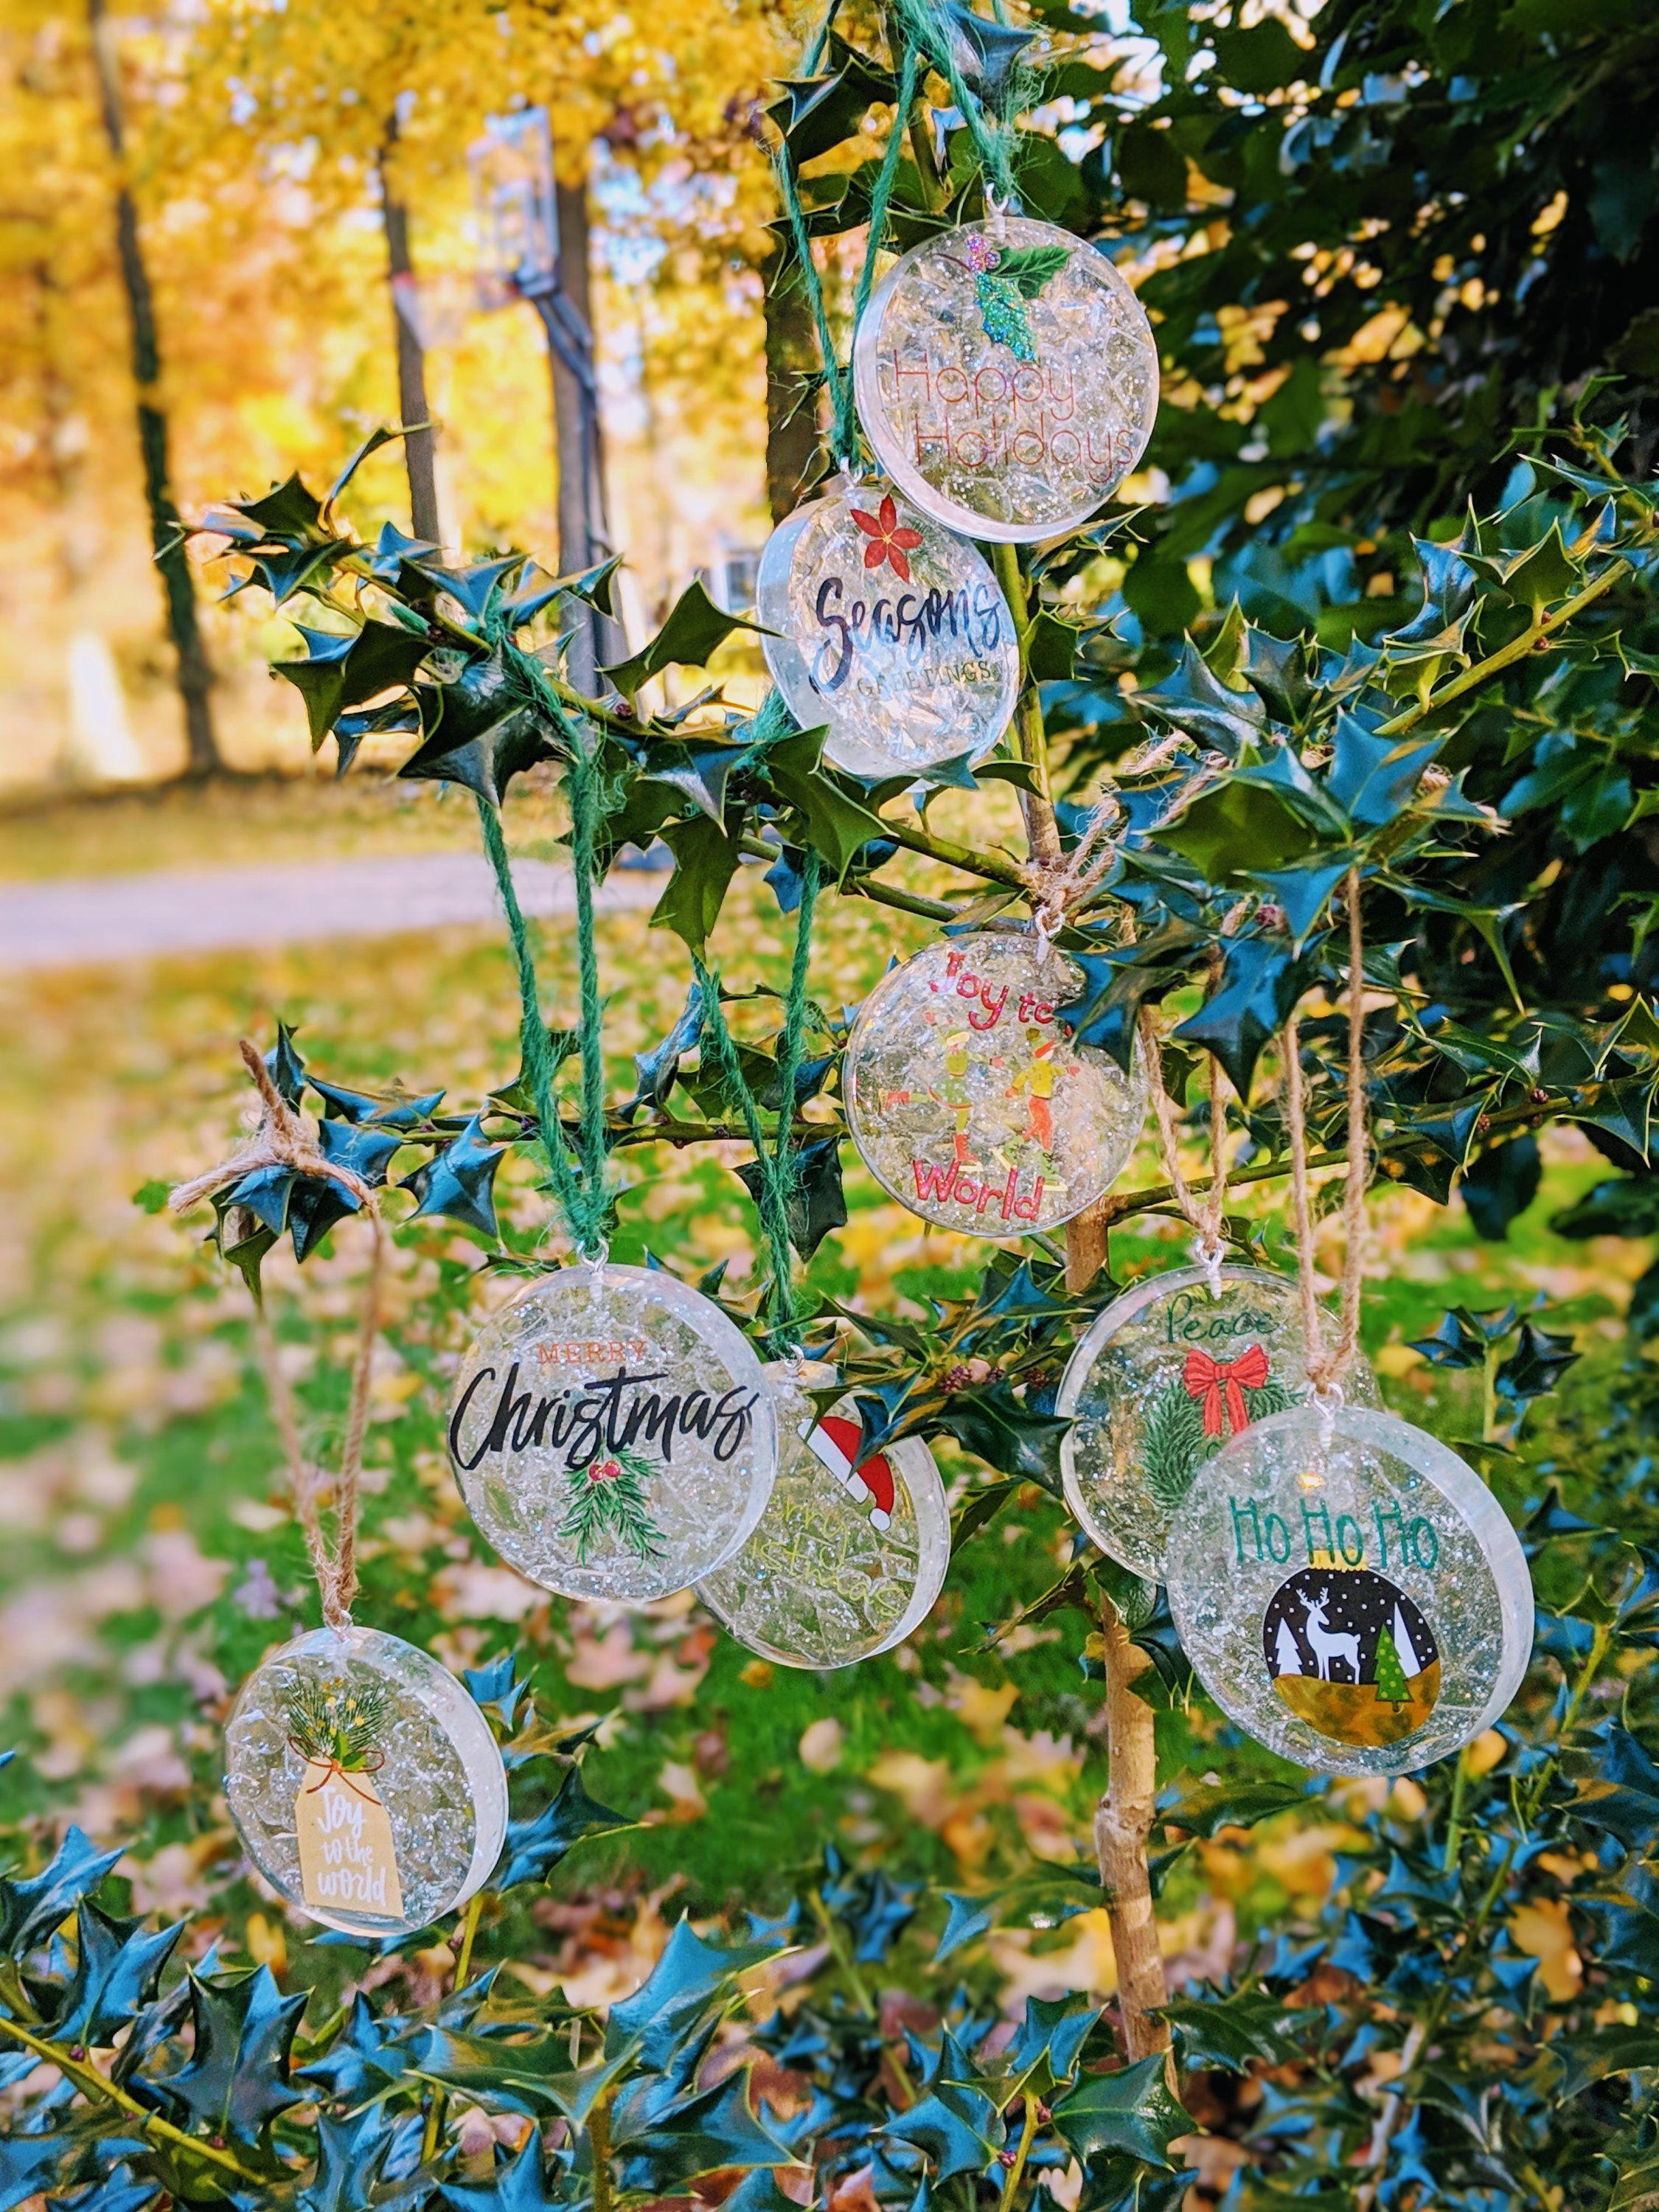 Resin Clear Round Christmas Ornaments Set Handmade Holiday Decor Christmas Decor Handmade Christmas Ornaments Unique Christmas Ornaments Diy Resin Ornaments